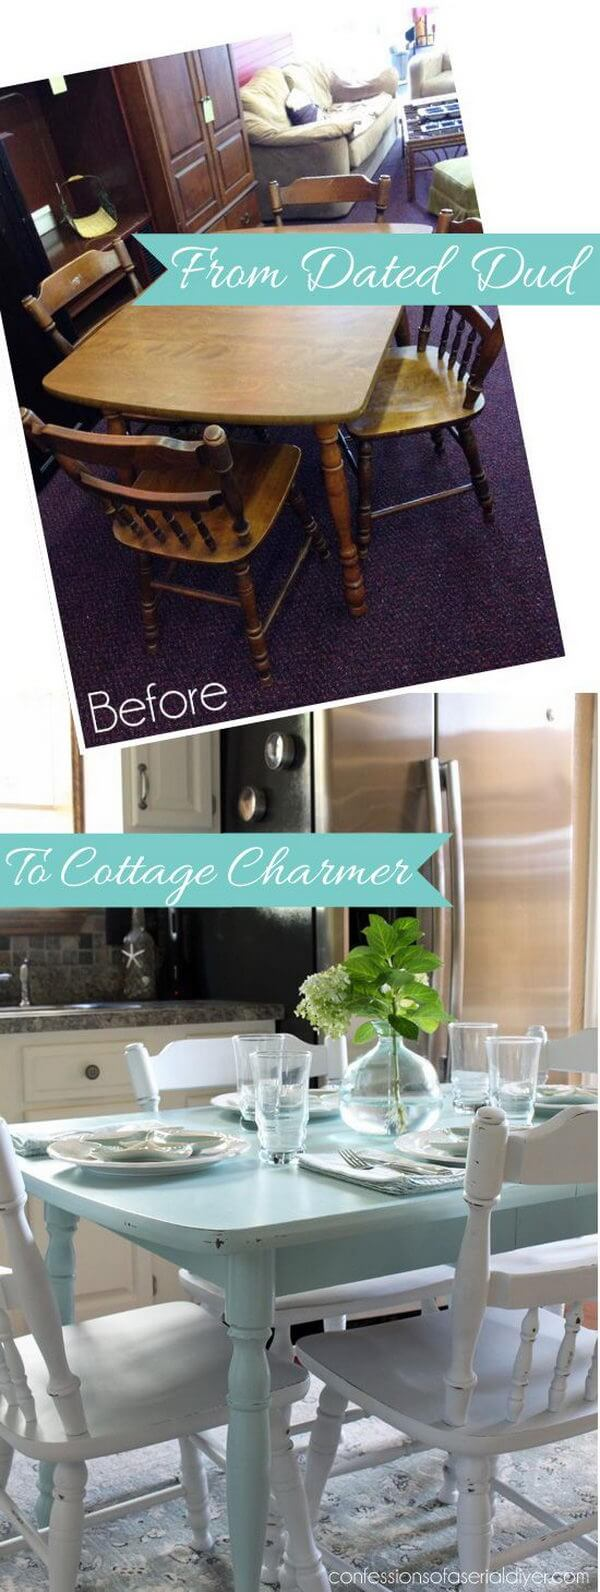 23 Best Diy Shabby Chic Furniture Ideas And Designs For 2021